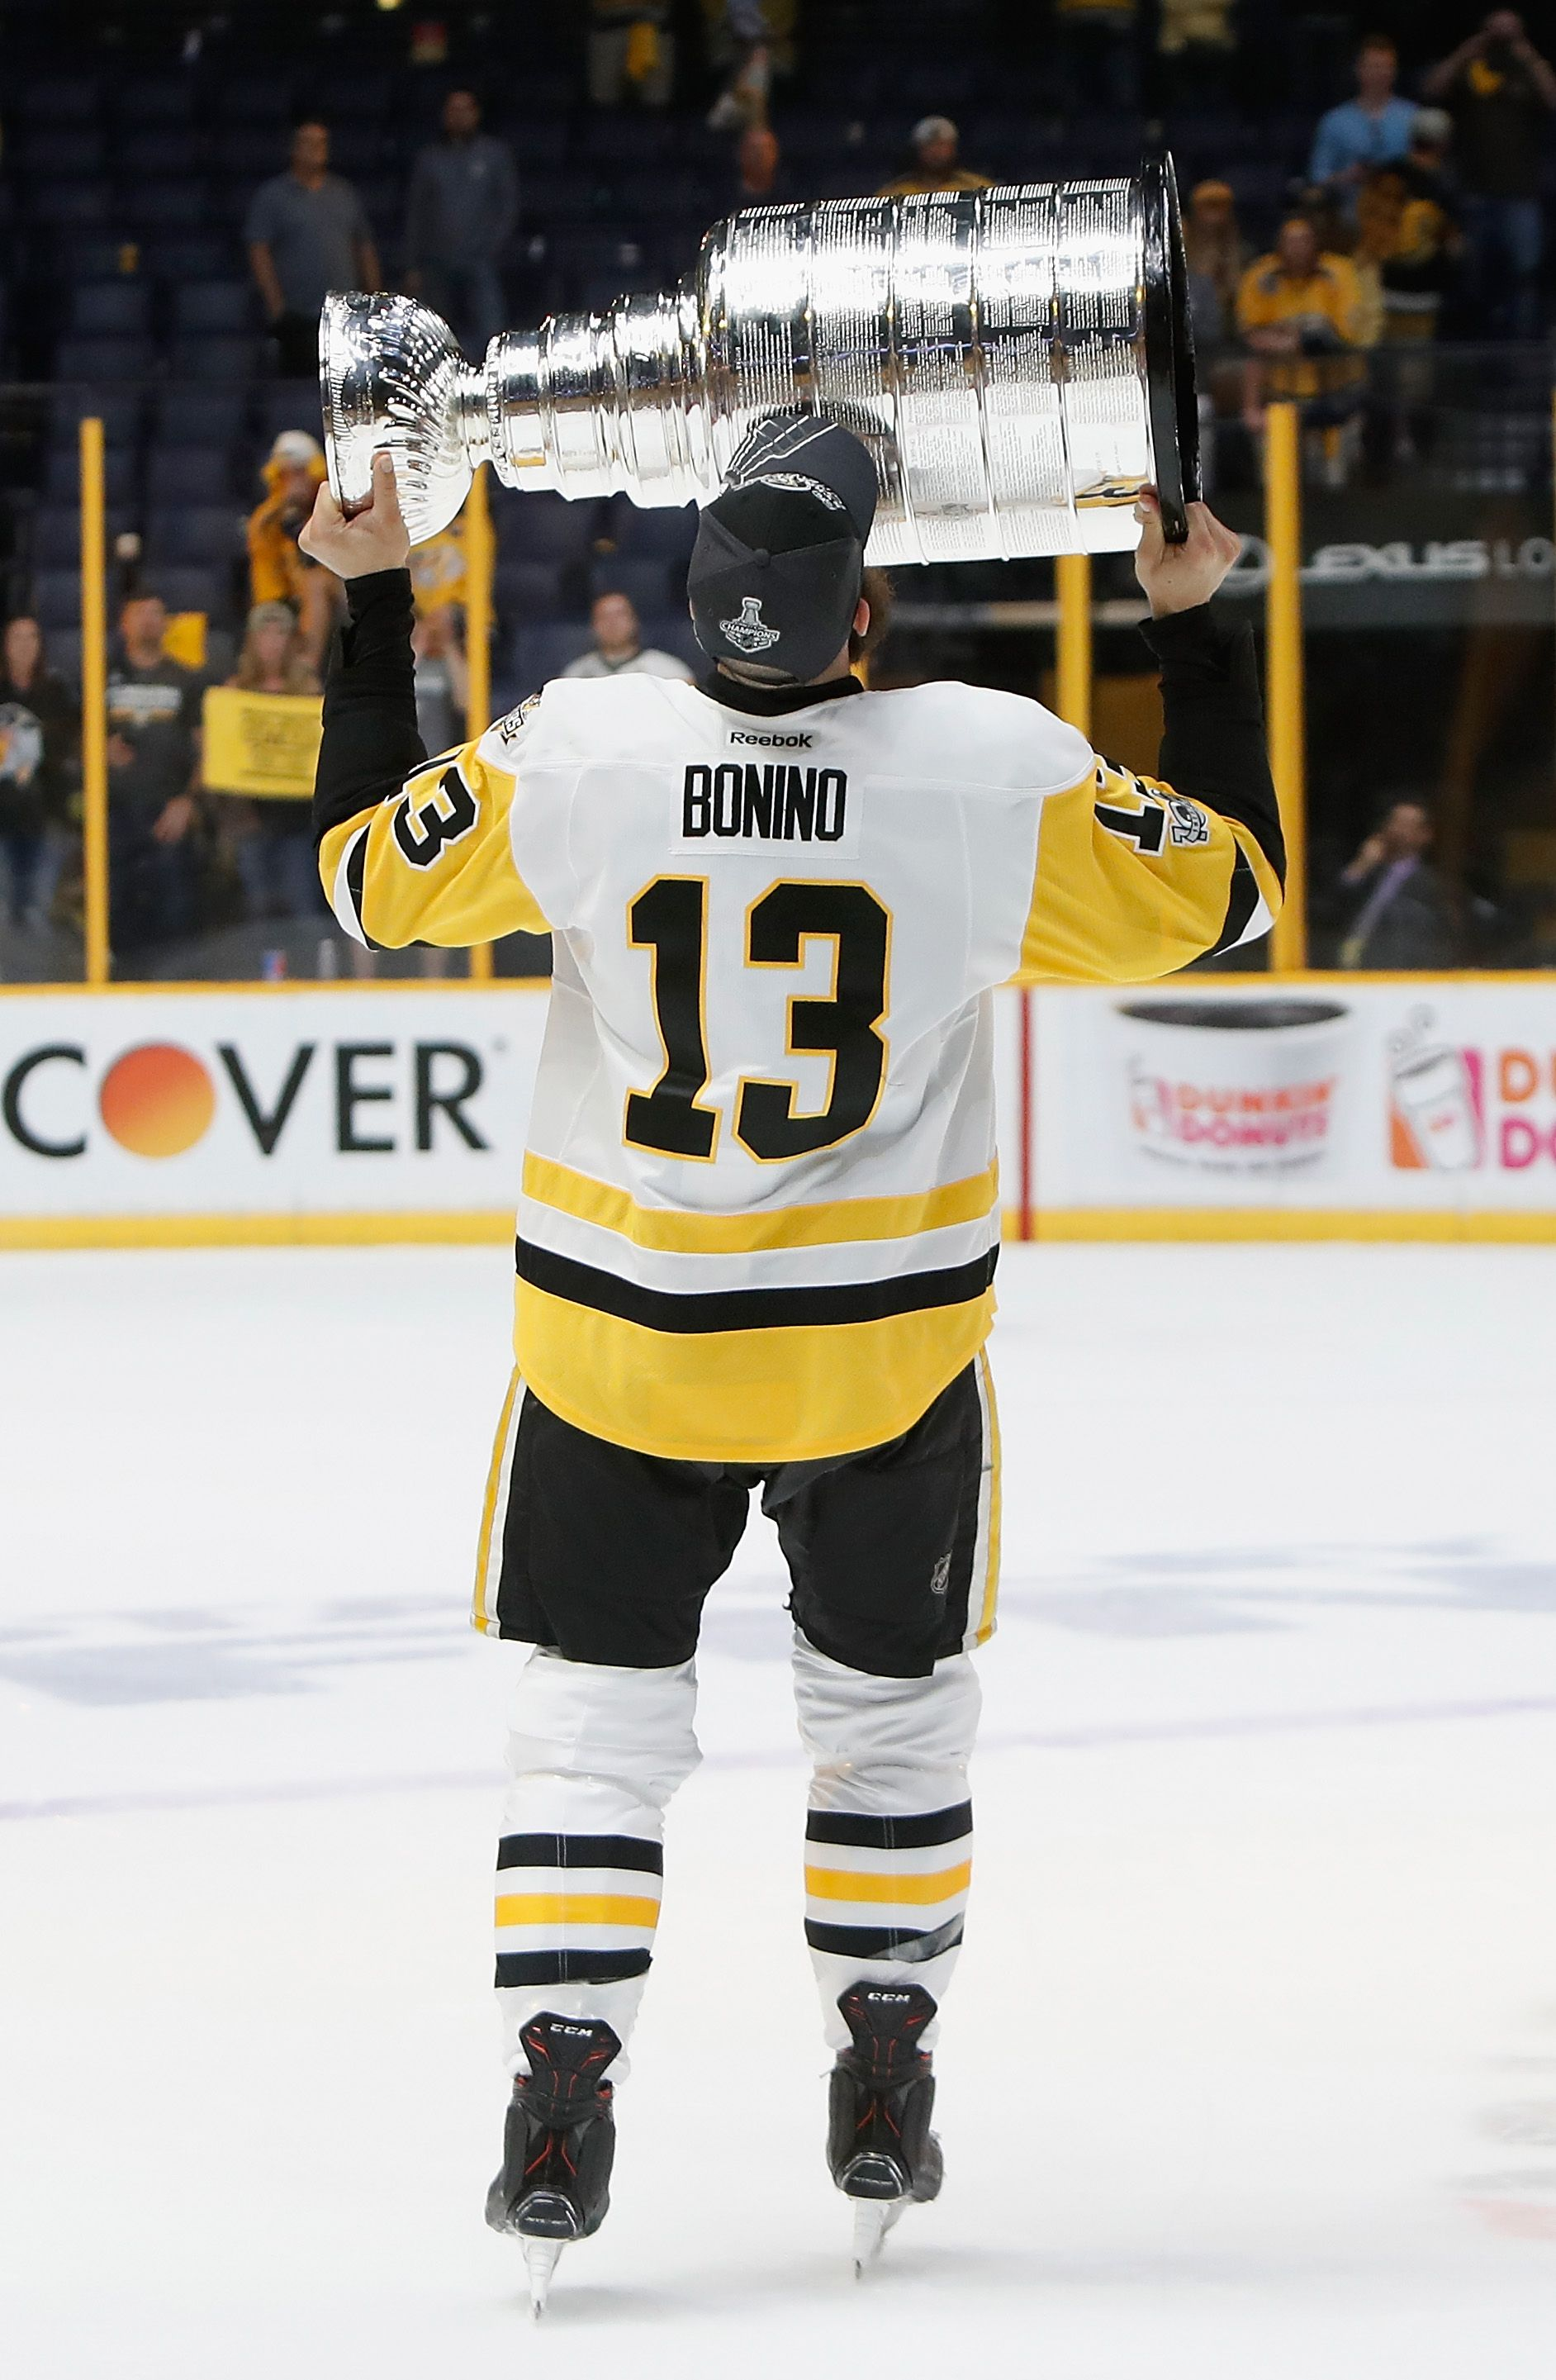 sports shoes e89e2 bac6a 2017 Stanley Cup Champion - Nick Bonino. Finished the ...